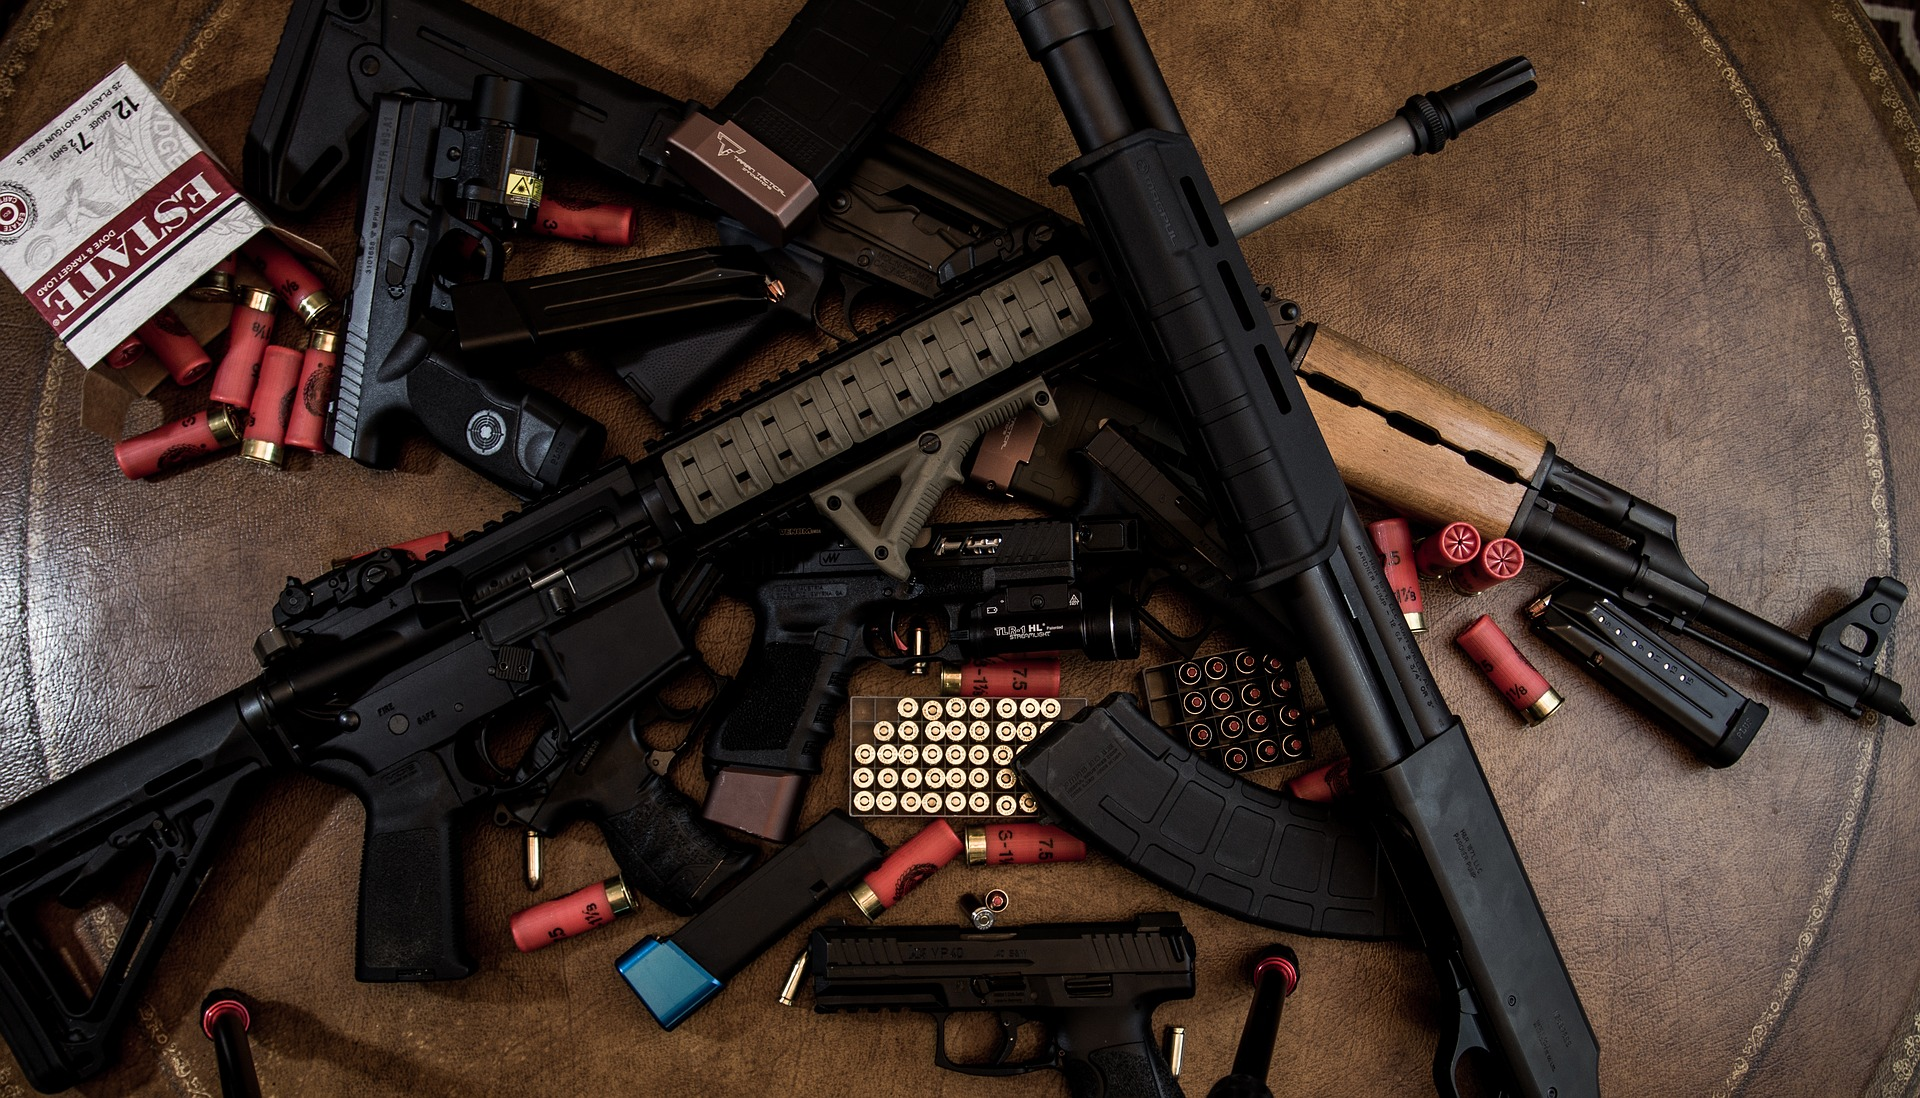 Let's get real about military-style assault rifles in the hands of the public